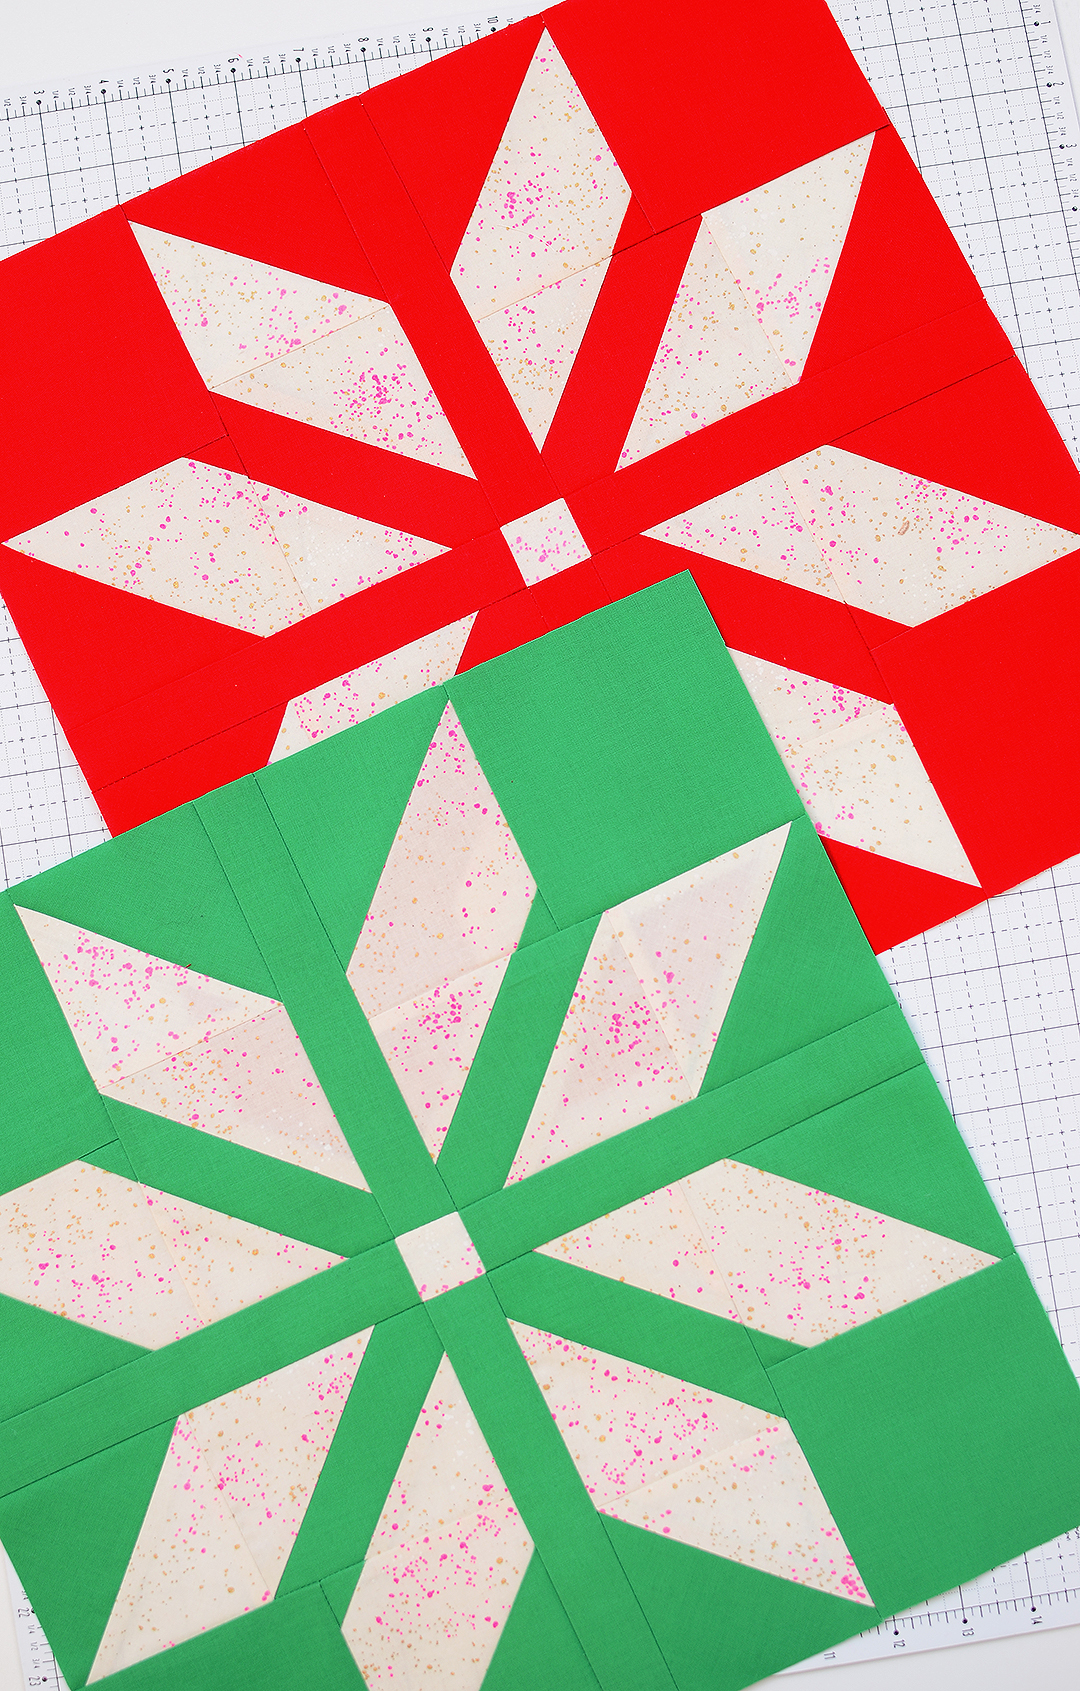 Red and green star quilt blocks